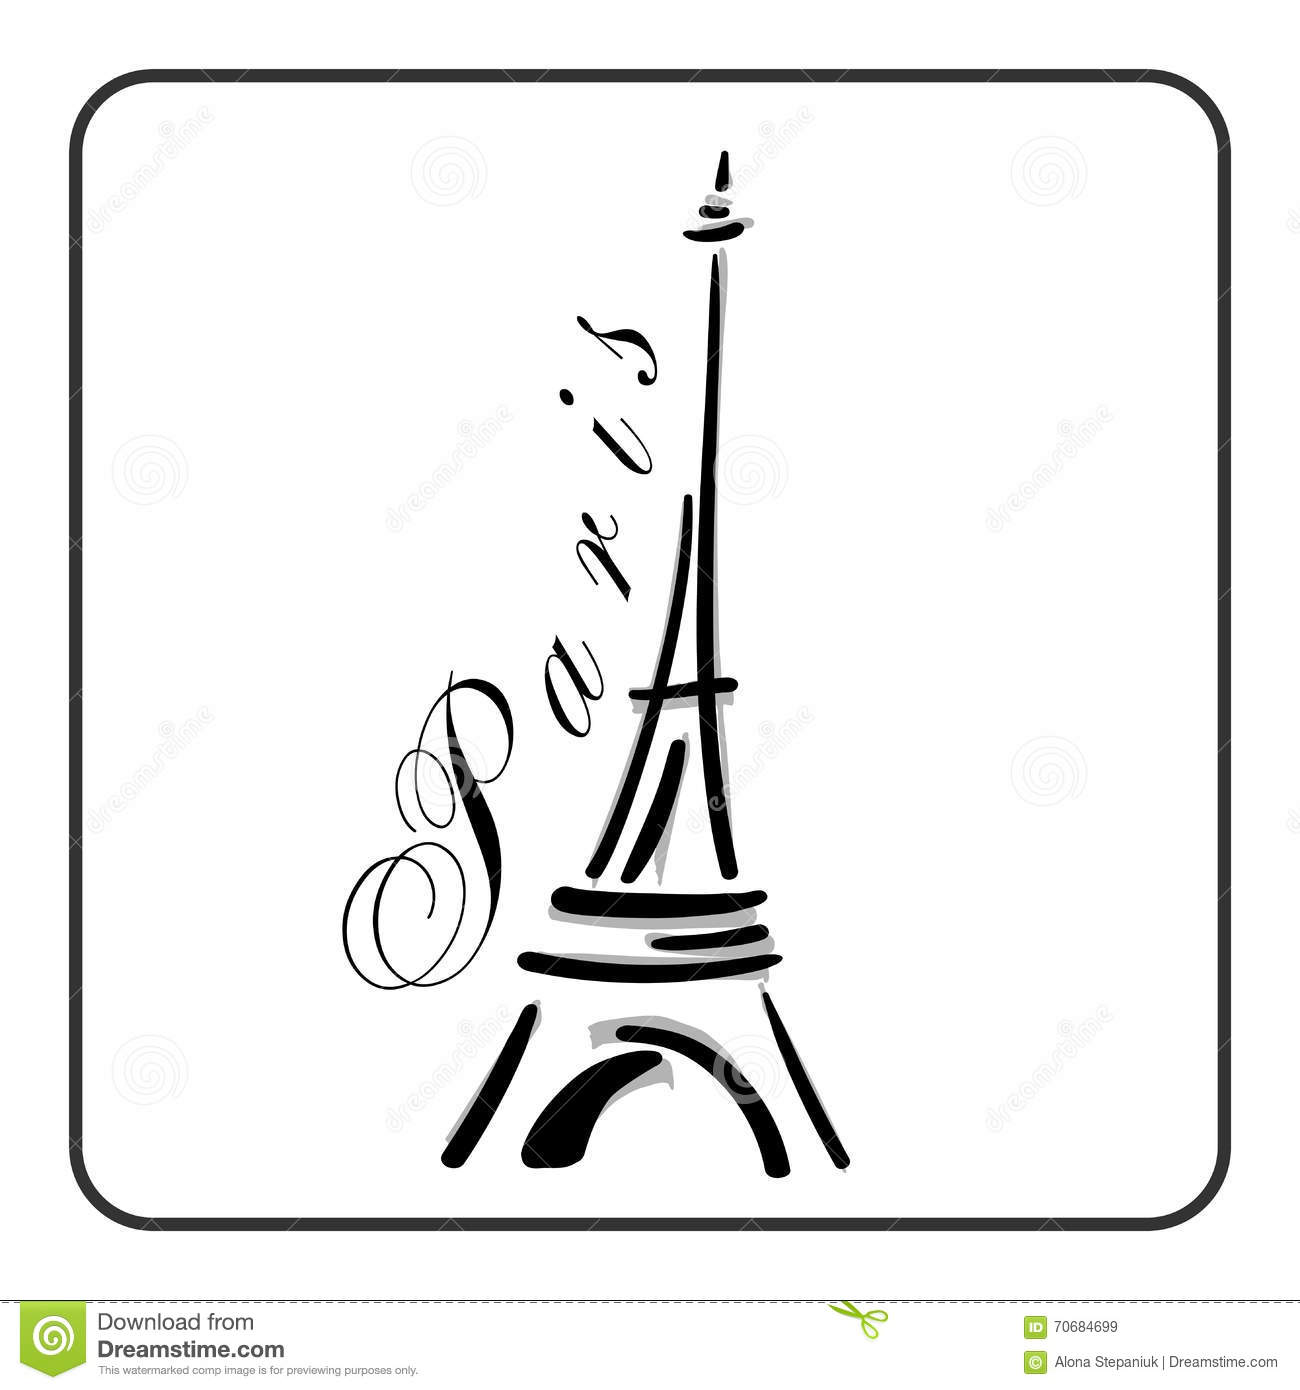 Eiffel Tower In A Simple Sketch Style Stock Vector ...